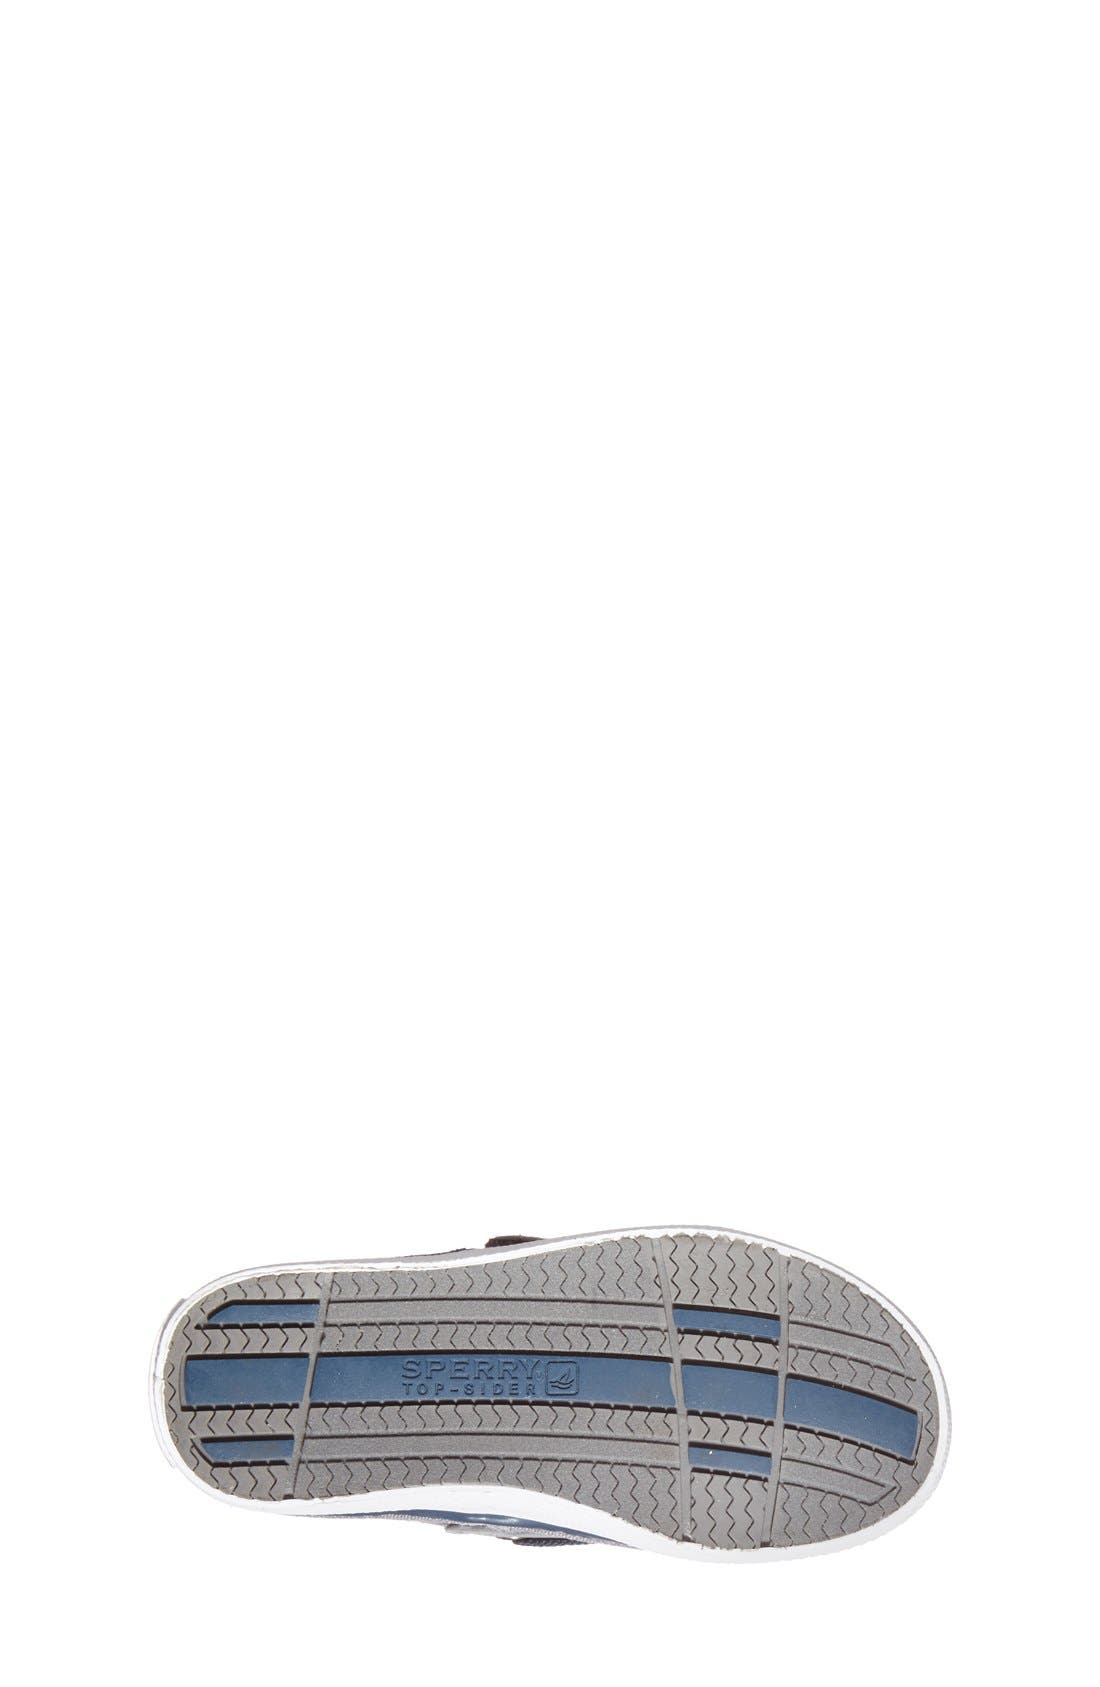 Alternate Image 4  - Sperry Kids 'Cruz Jr.' Slip-On Boat Shoe (Walker & Toddler)